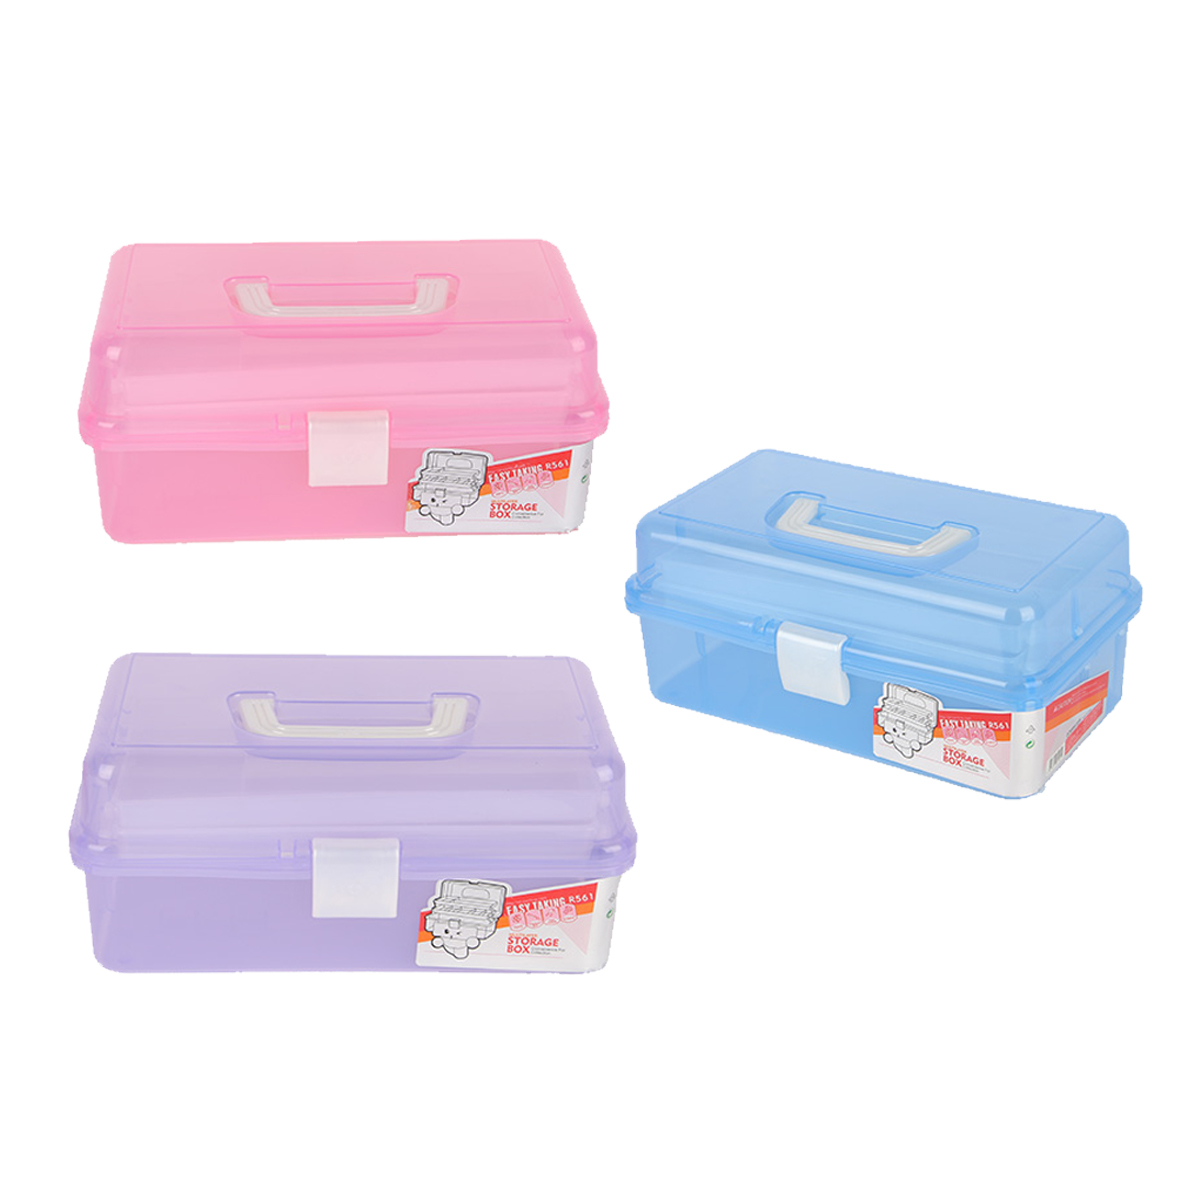 3 Layer Plastic Nail Art Container Makeup Cosmetic Organiser Office Desktop Make Up Jewelry Compartment Tool Box 3 Colors3 Layer Plastic Nail Art Container Makeup Cosmetic Organiser Office Desktop Make Up Jewelry Compartment Tool Box 3 Colors